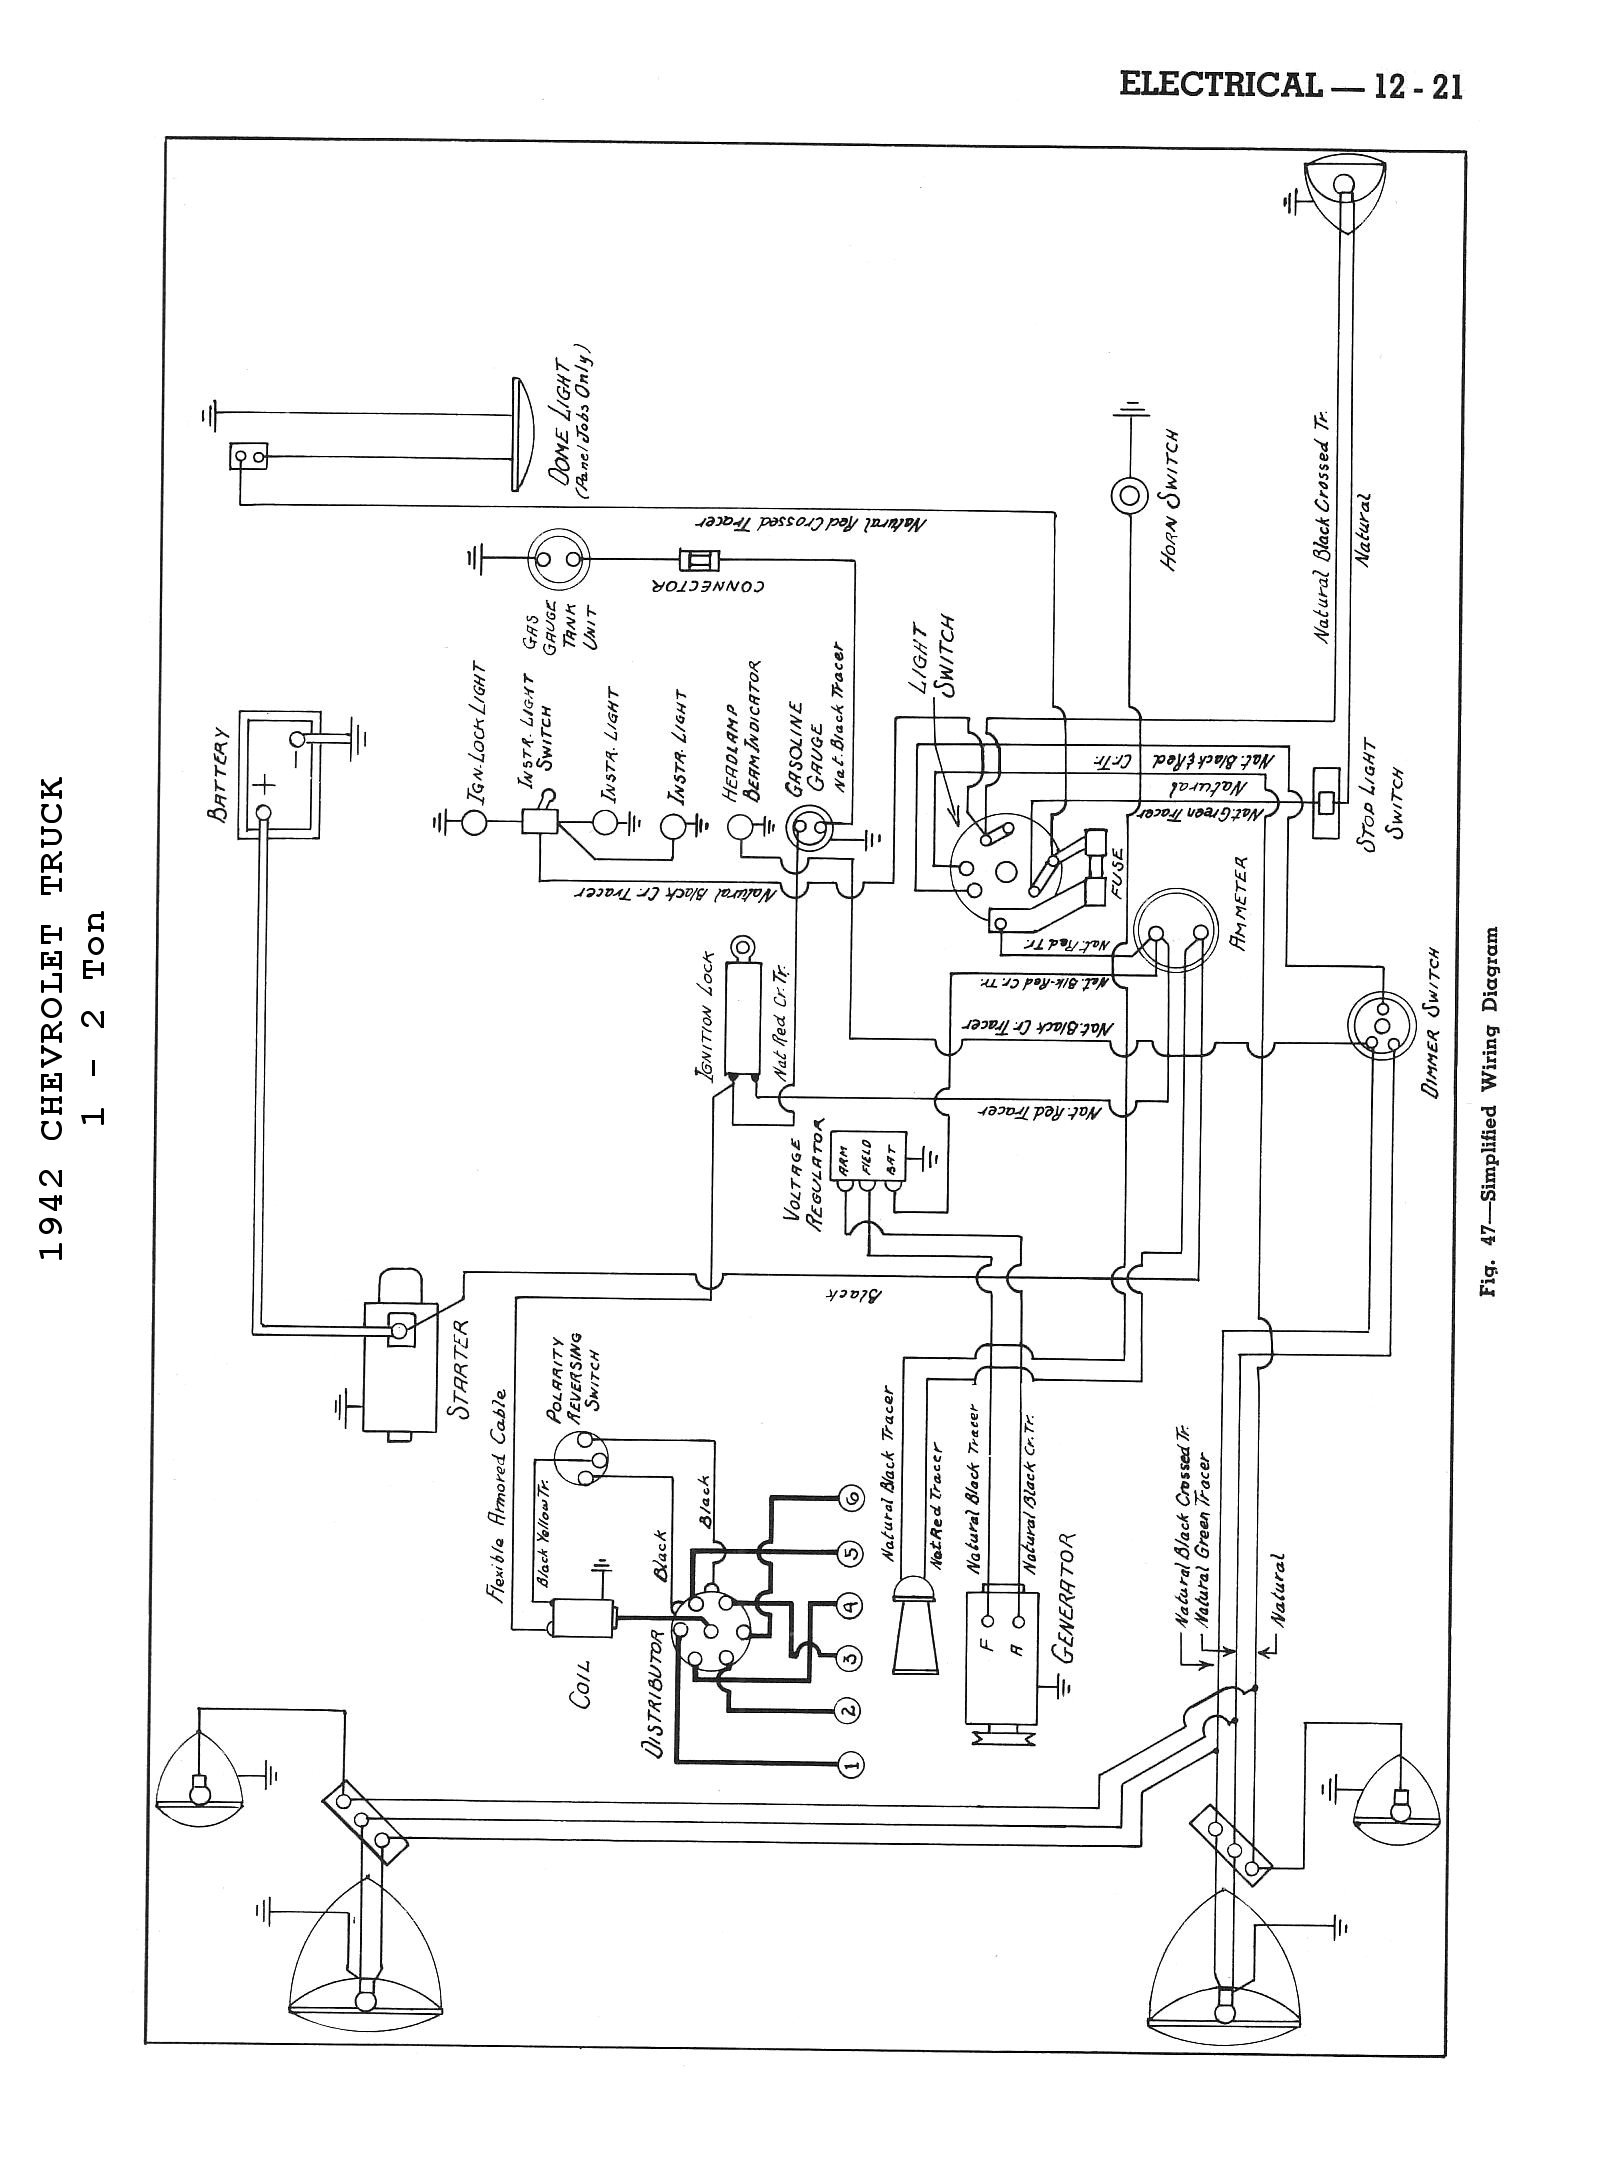 42cm4x2t1221 chevy wiring diagrams gas guard 2 wiring diagram at crackthecode.co